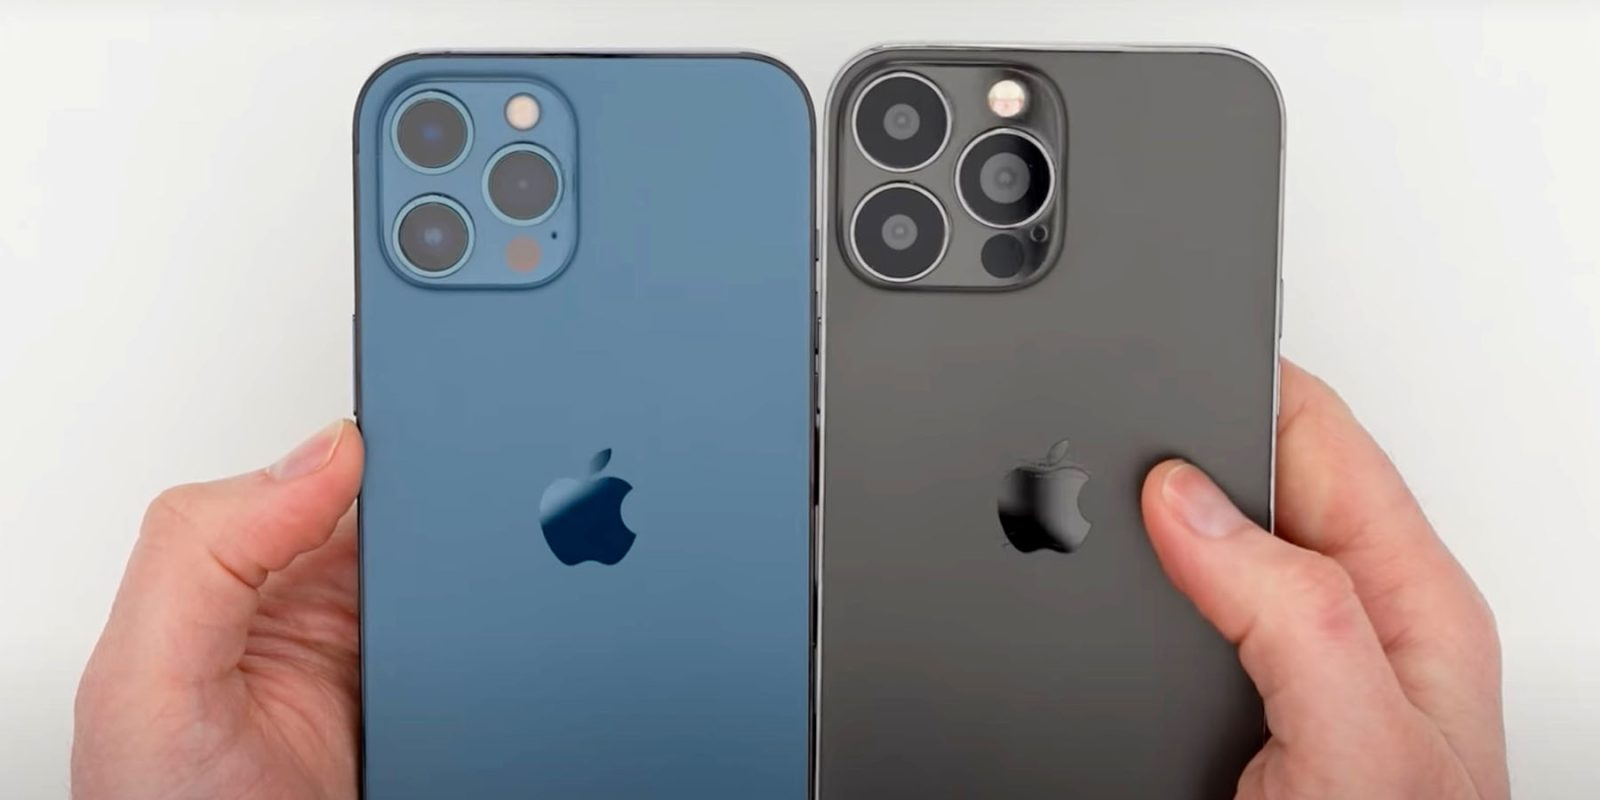 Survey: 10% Of Customers Plan To Upgrade To iPhone 13